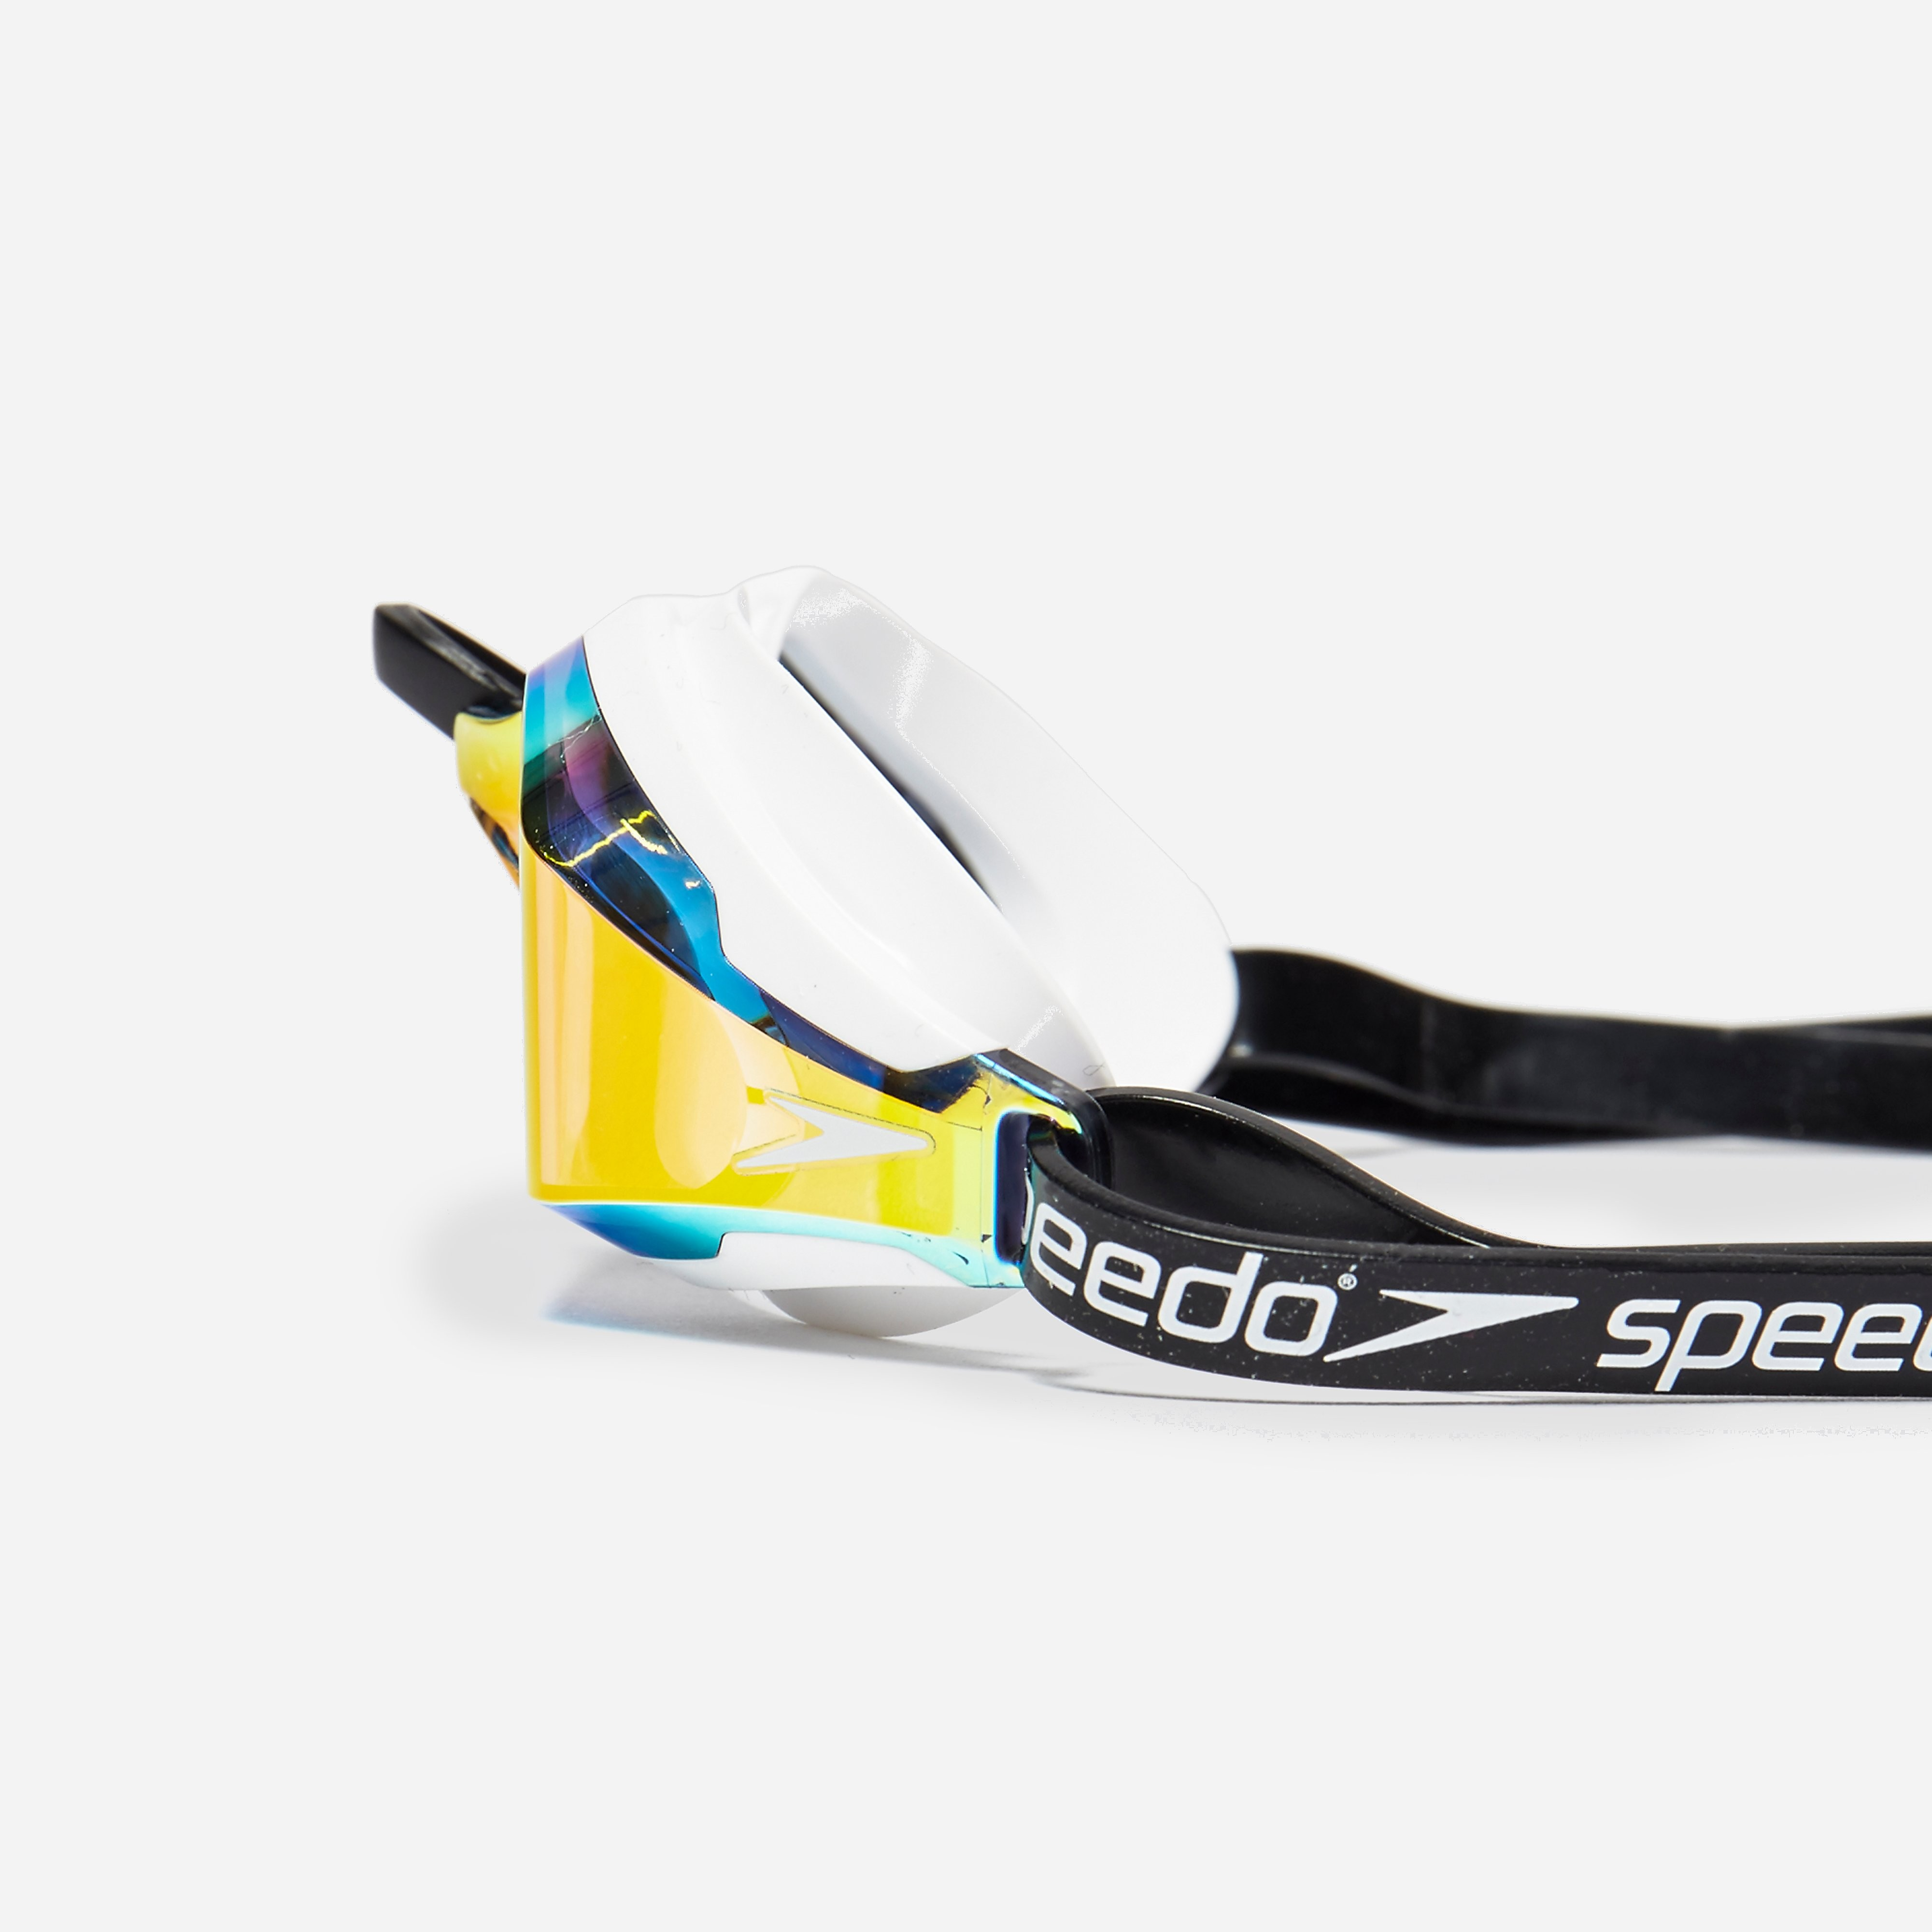 Speedo Fastskin Speedsocket 2 Mirror Goggles